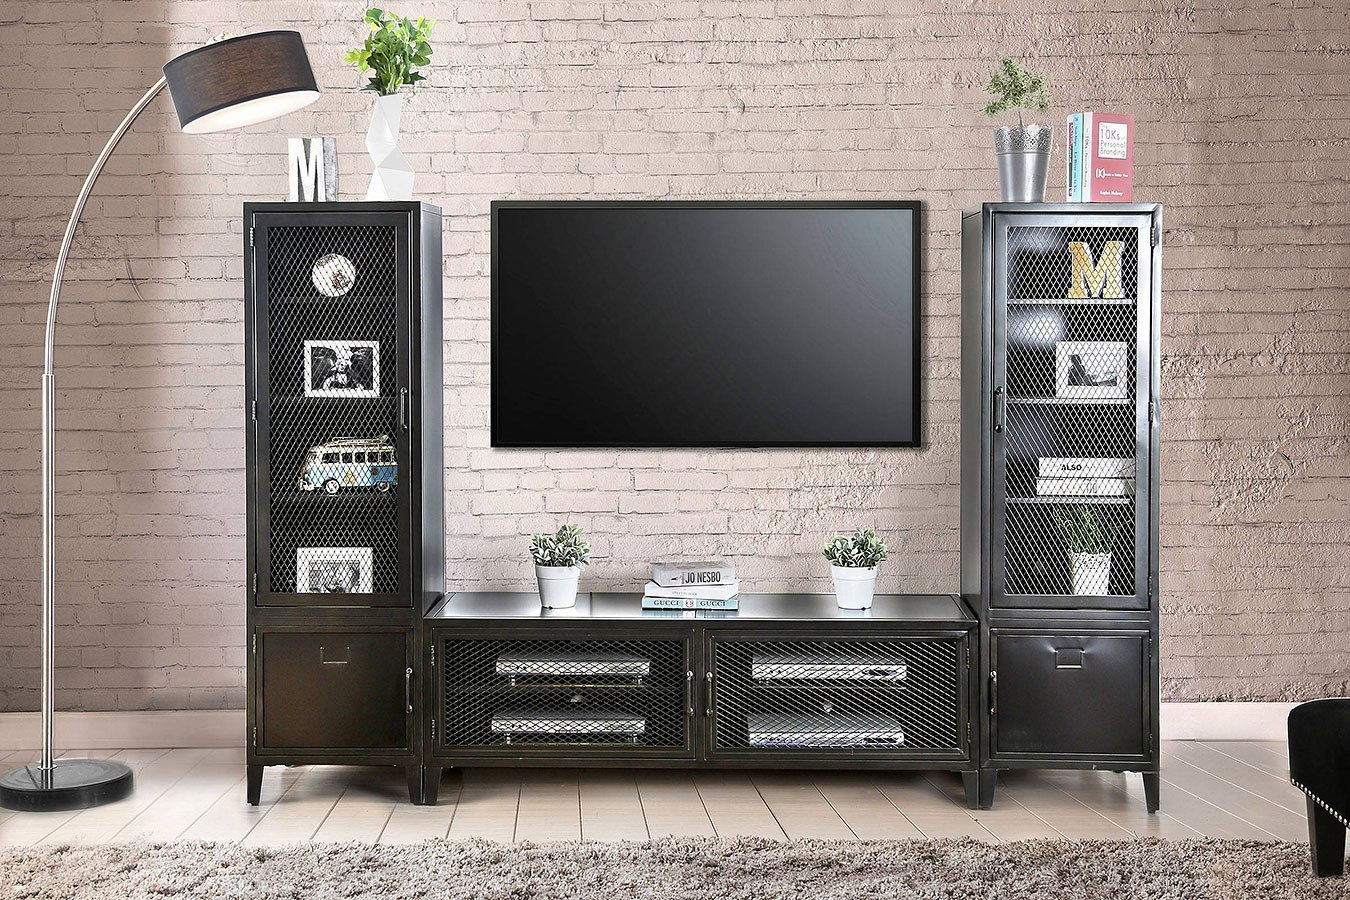 Clonakitty Entertainment Wall W 60 Inch Tv Stand By Furniture Of